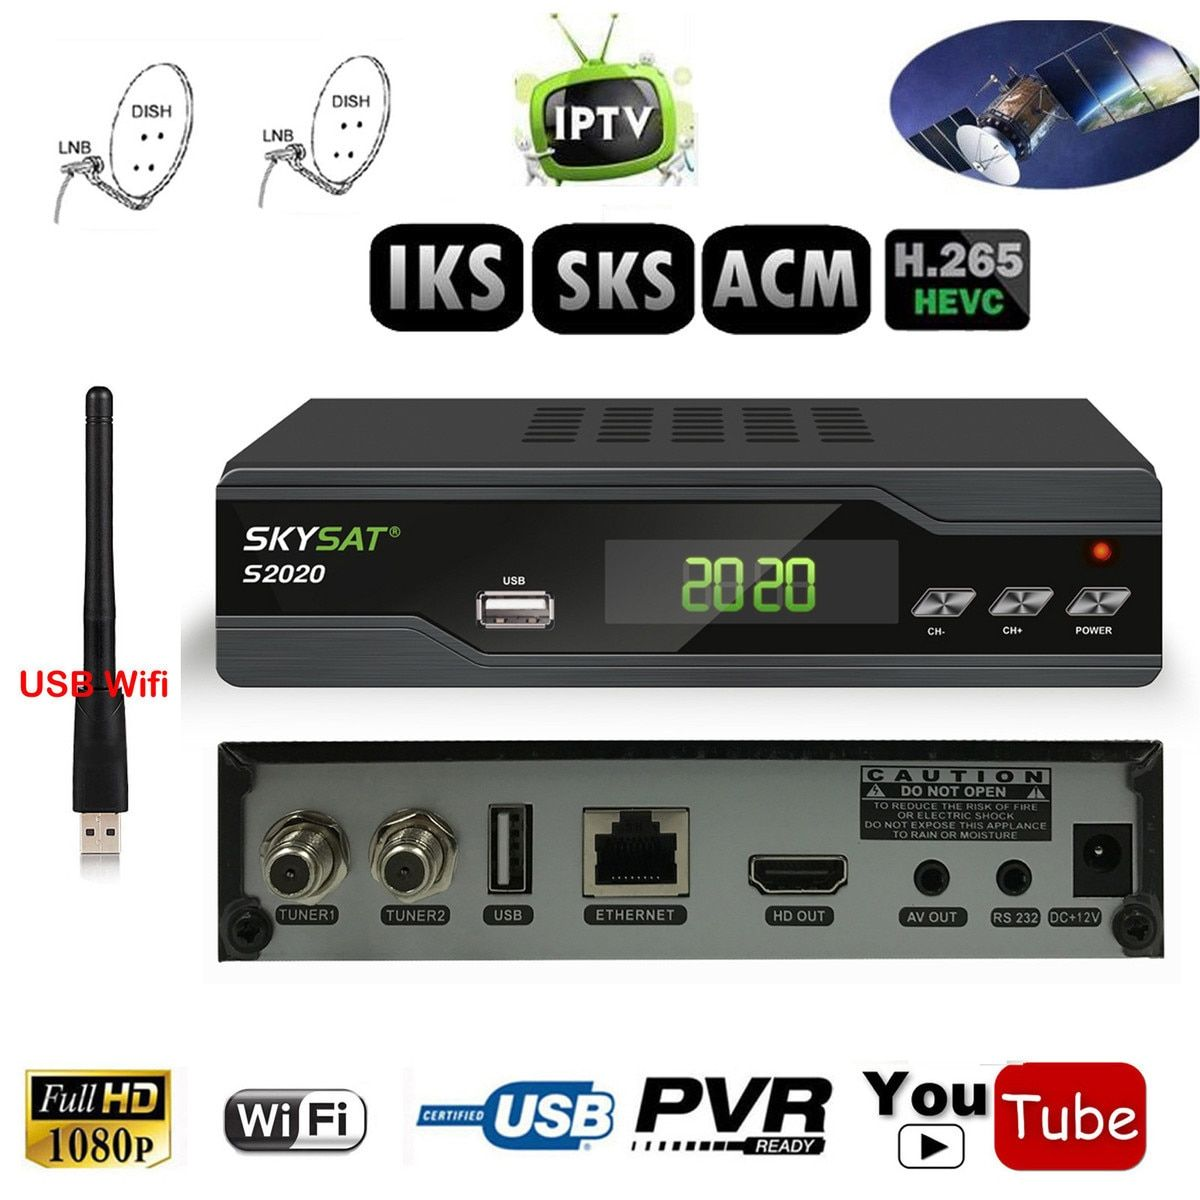 Twin Tuner IKS SKS ACM IPTV H.265 Satellite Receiver for South America Europe Middle East Asia Support Wifi 3G Cccam IKS CS DLNA